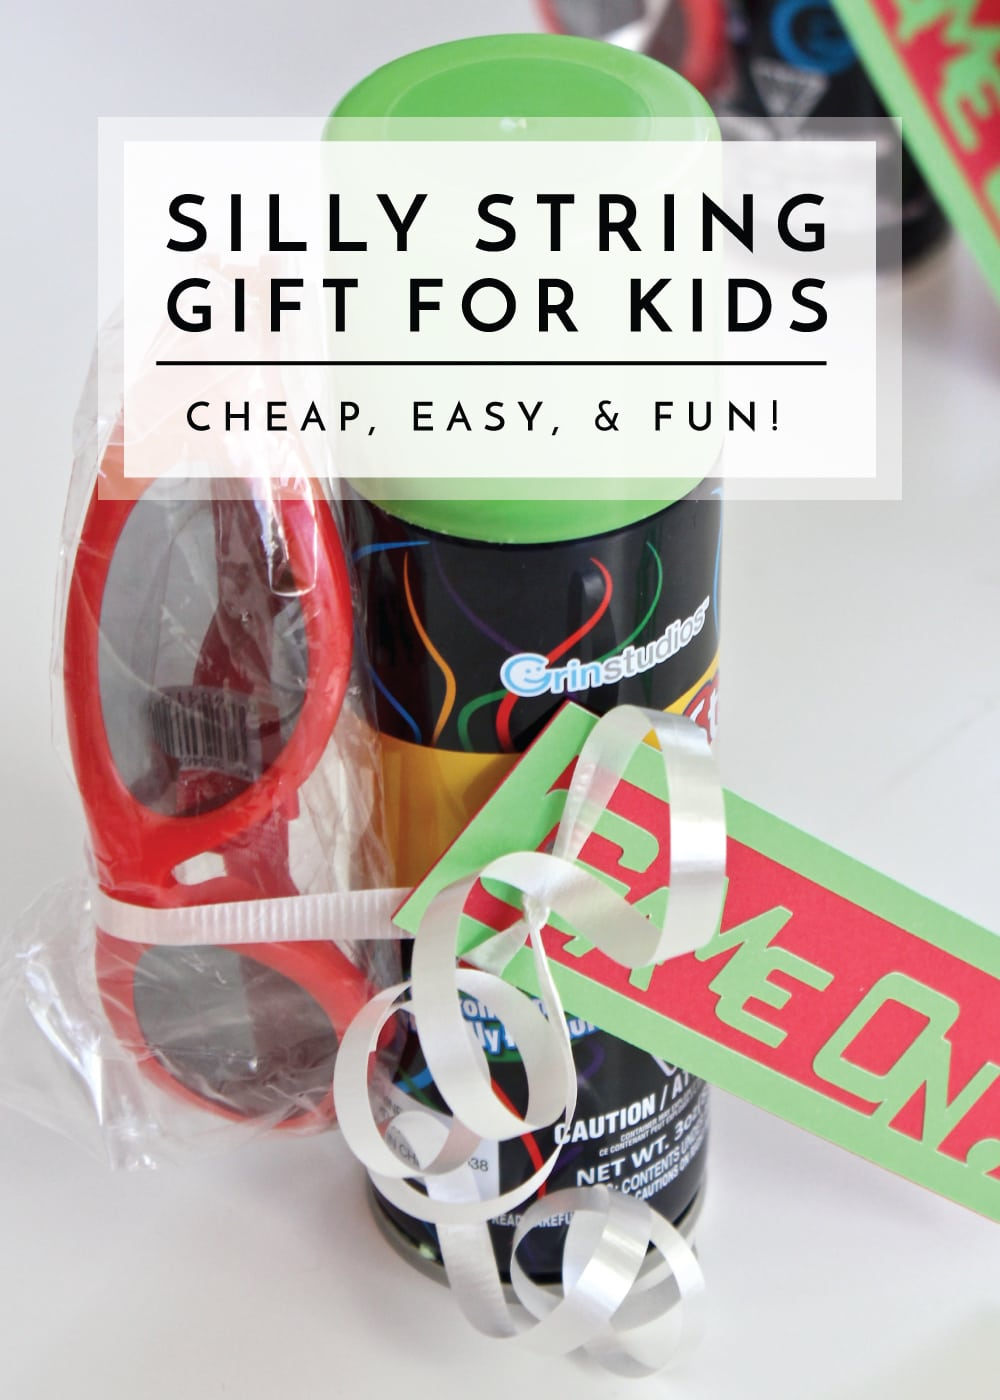 Celebrate birthdays, holidays or the last day of school with these quick and easy Silly String Gift for Kids!